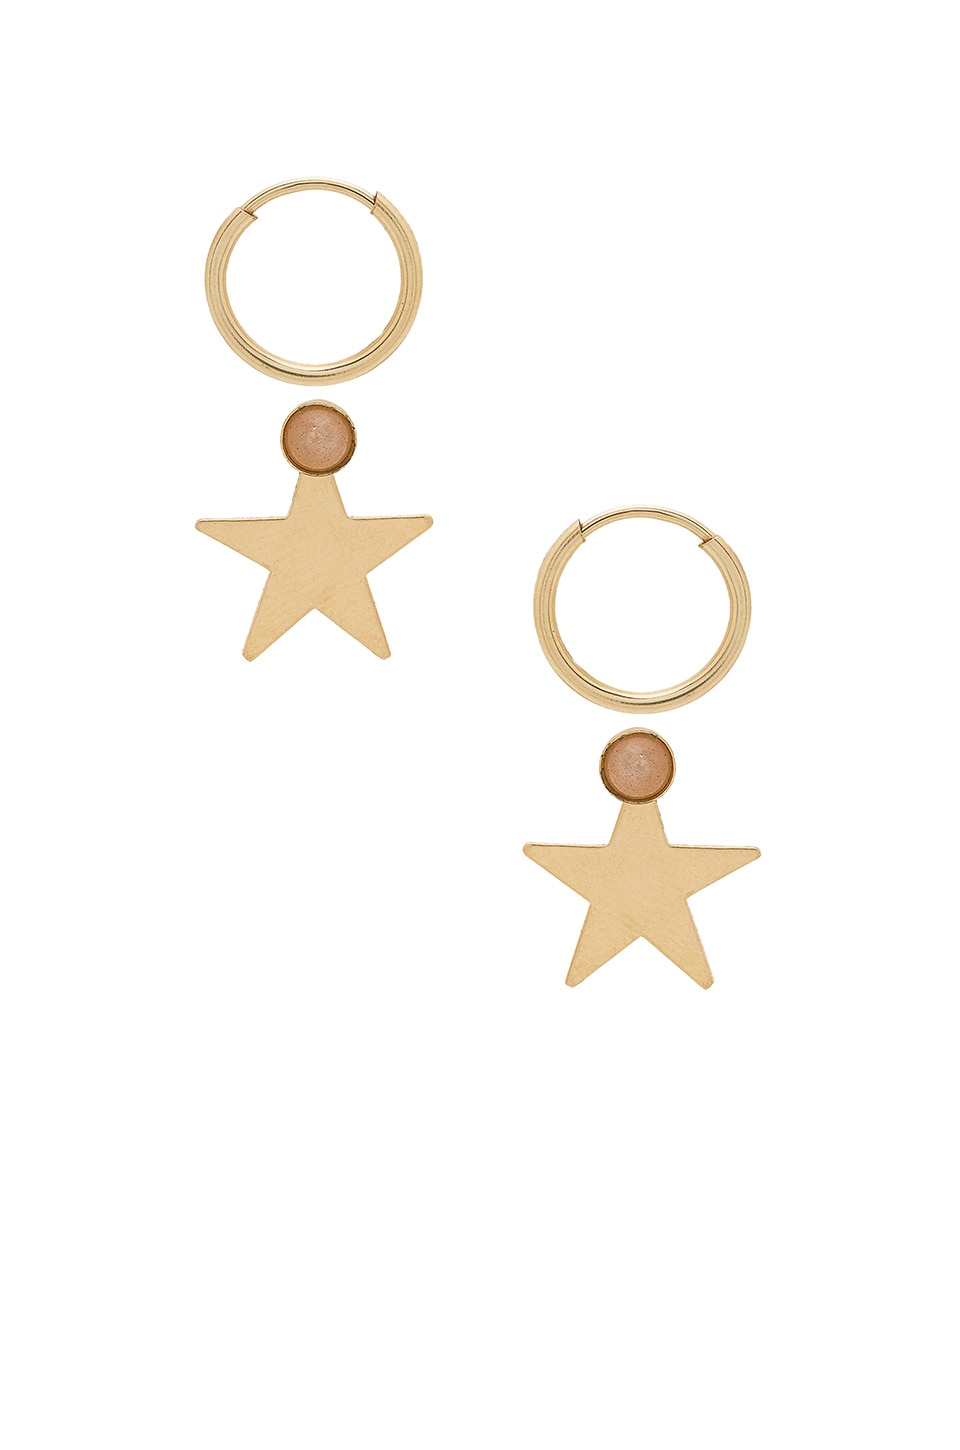 PARADIGM STARS AND HOOPS SET